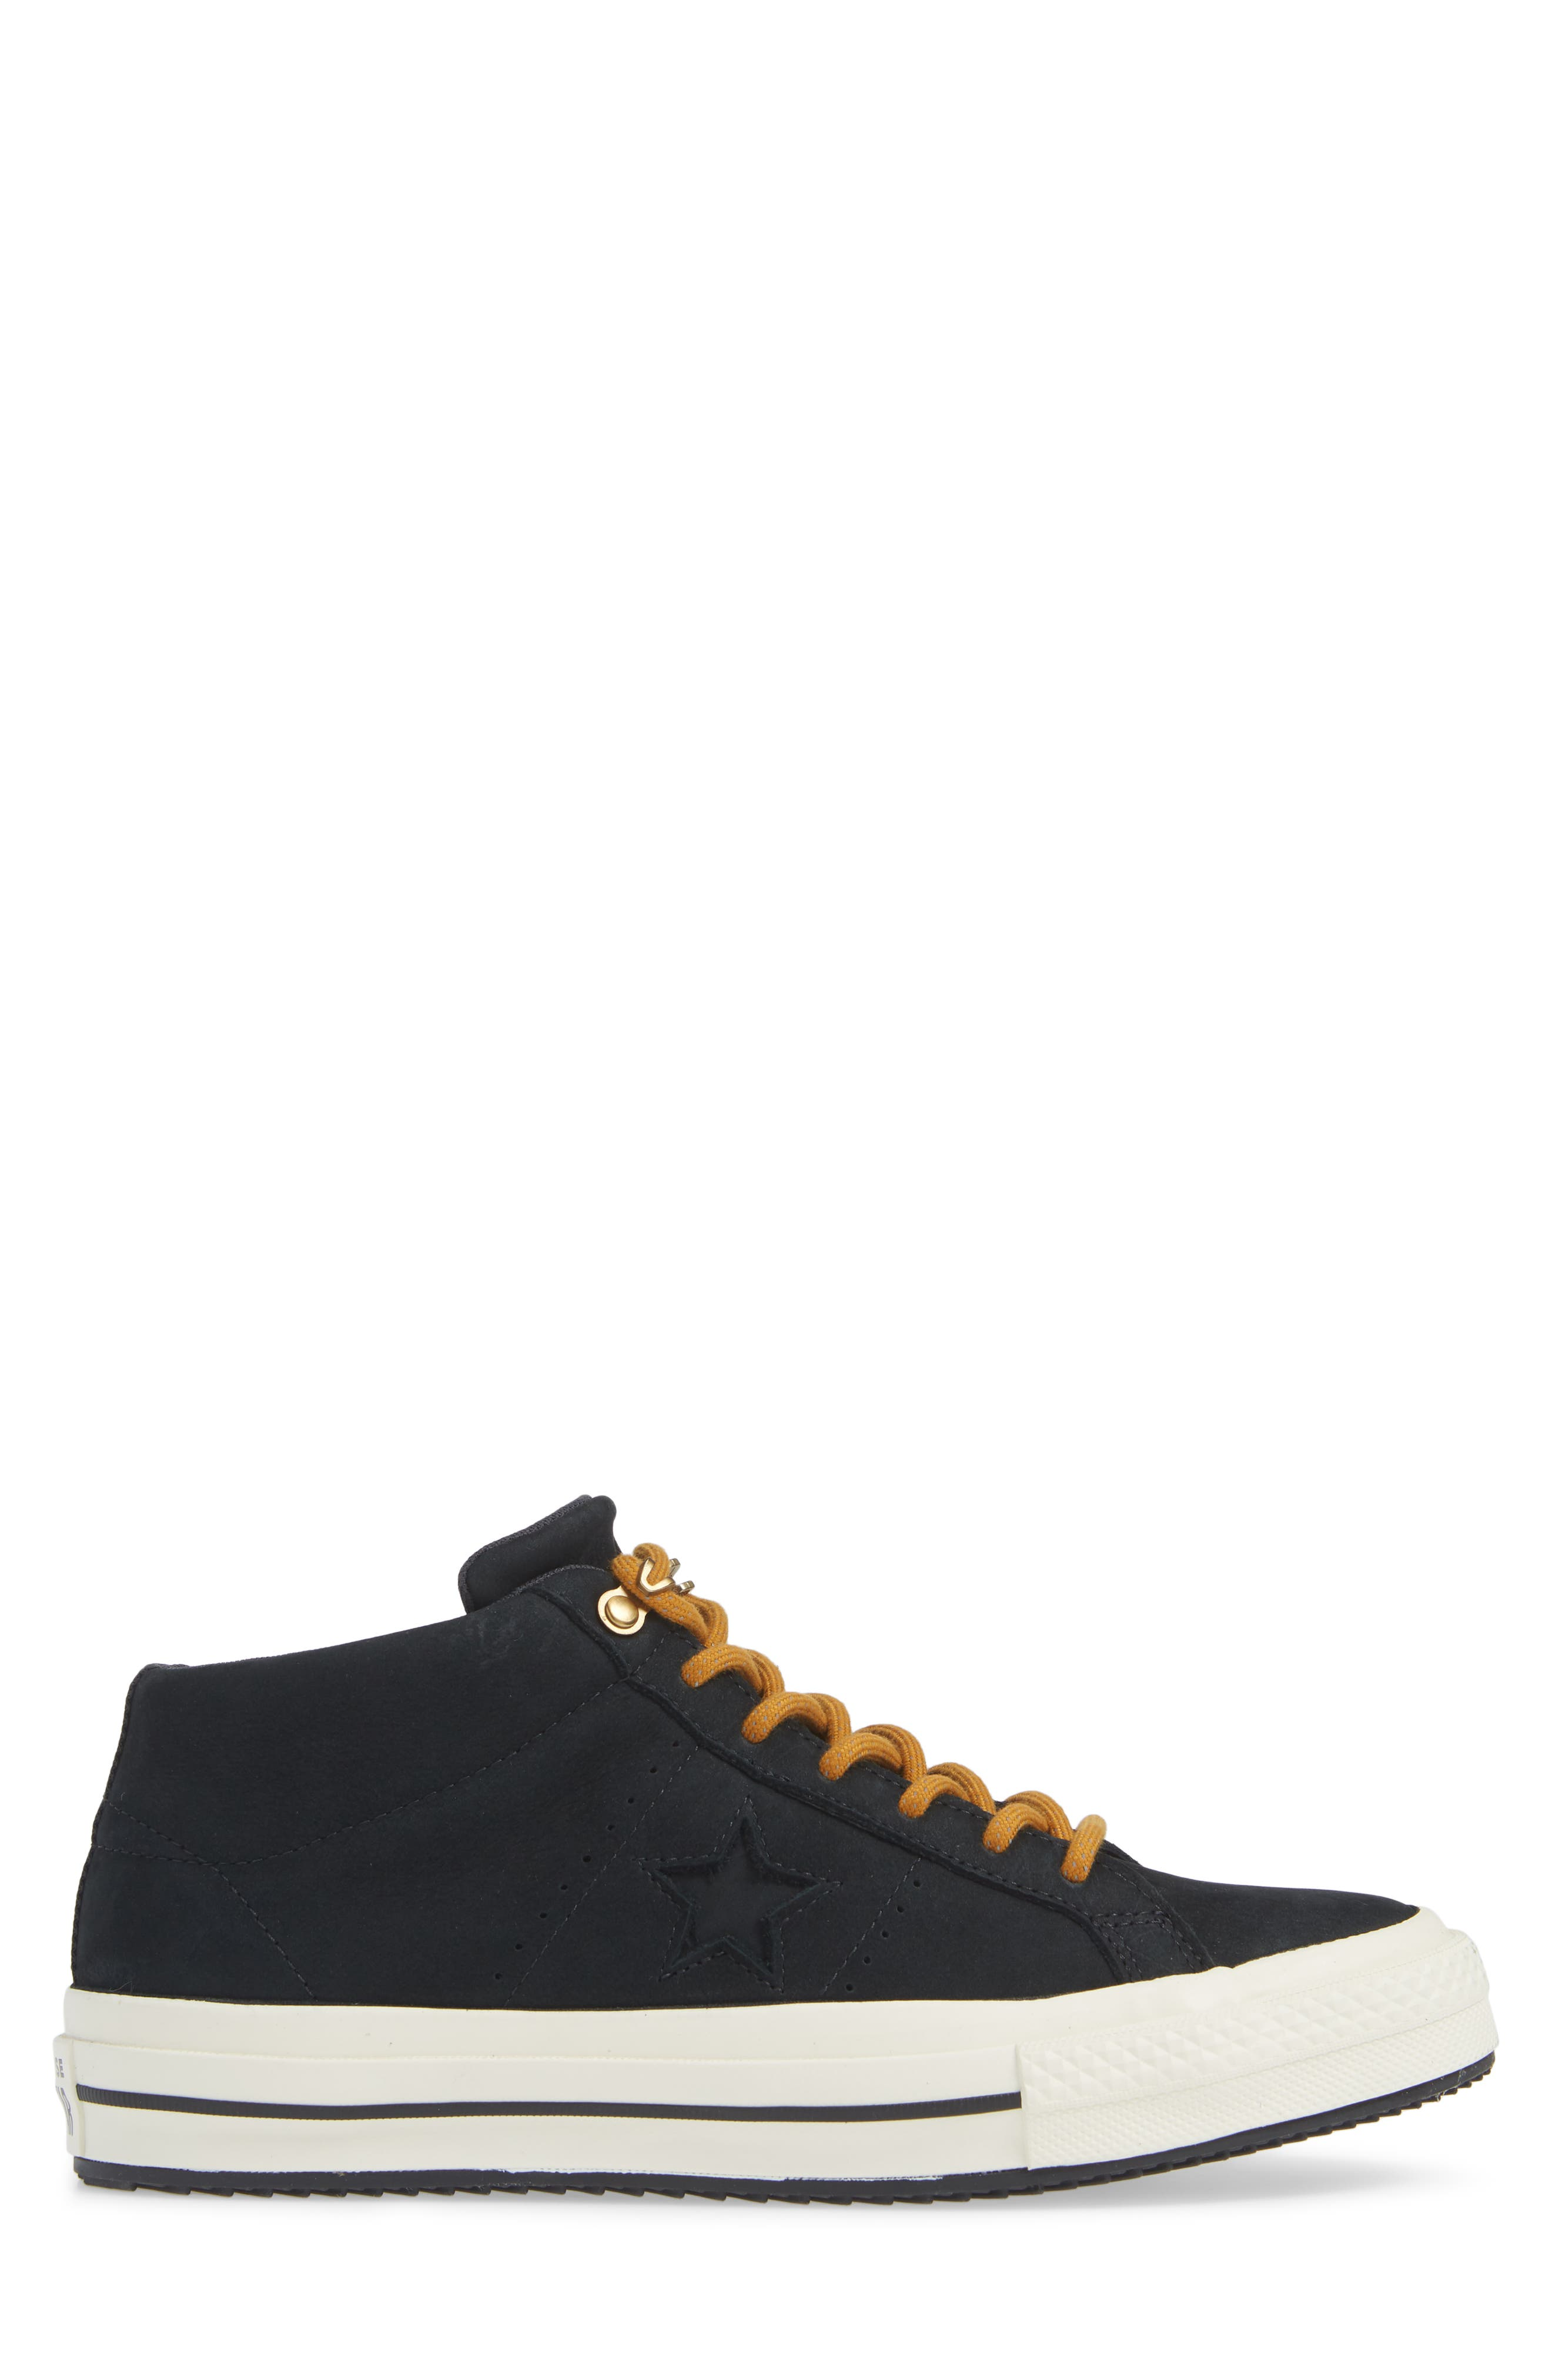 One Star Mid Counter Climate Scout Sneaker,                             Alternate thumbnail 3, color,                             BLACK/ BLUE HERO/ TEAK SUEDE